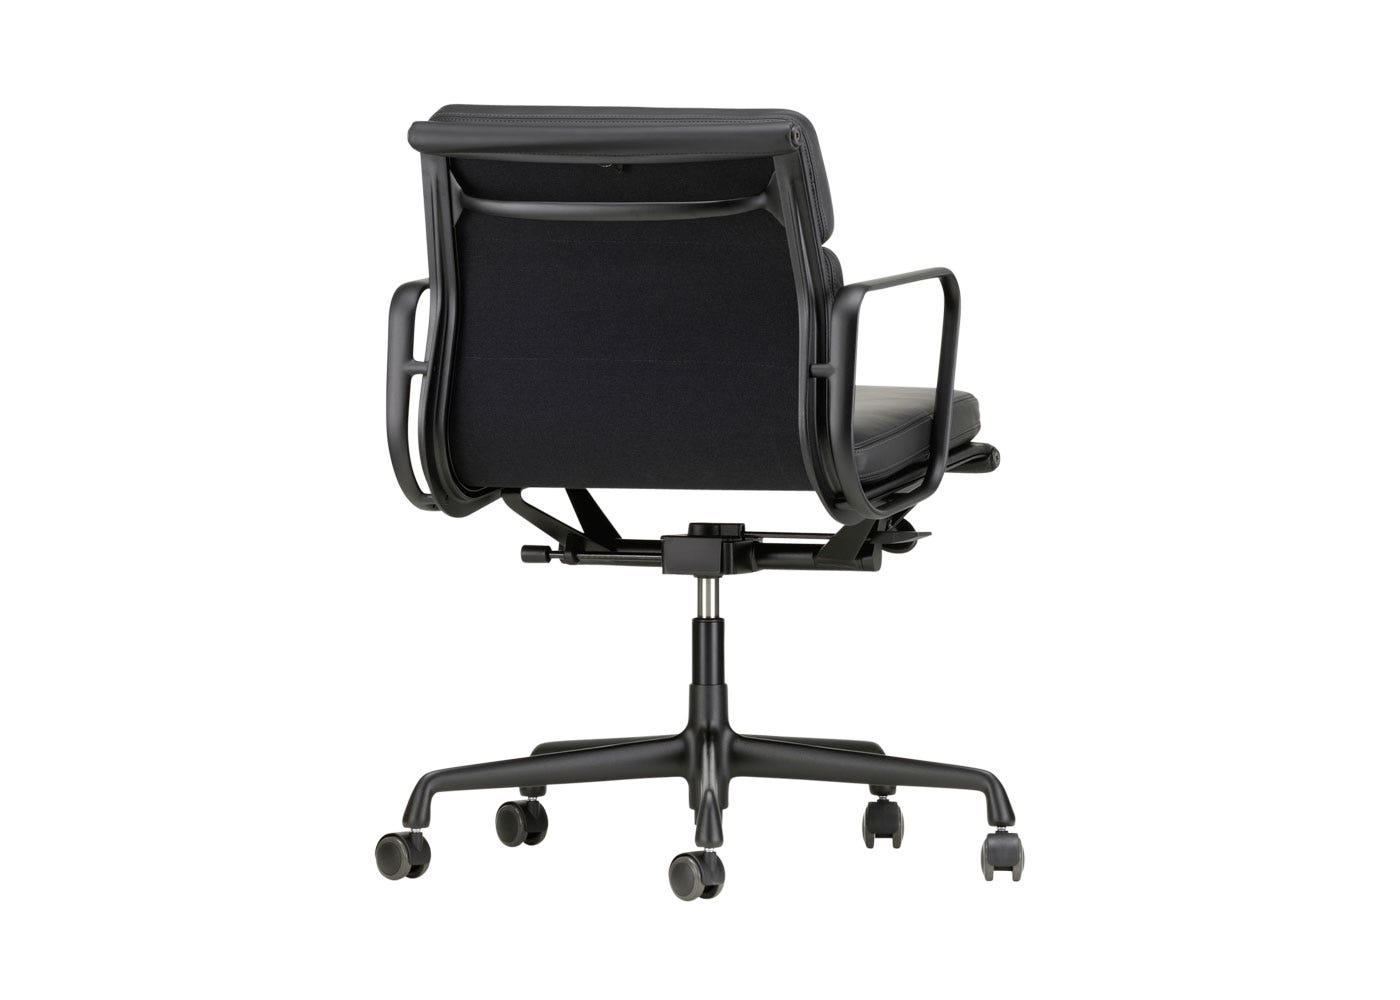 As Shown: Eames EA217 Soft Pad Chair Medium High Backrest Angled Back Profile